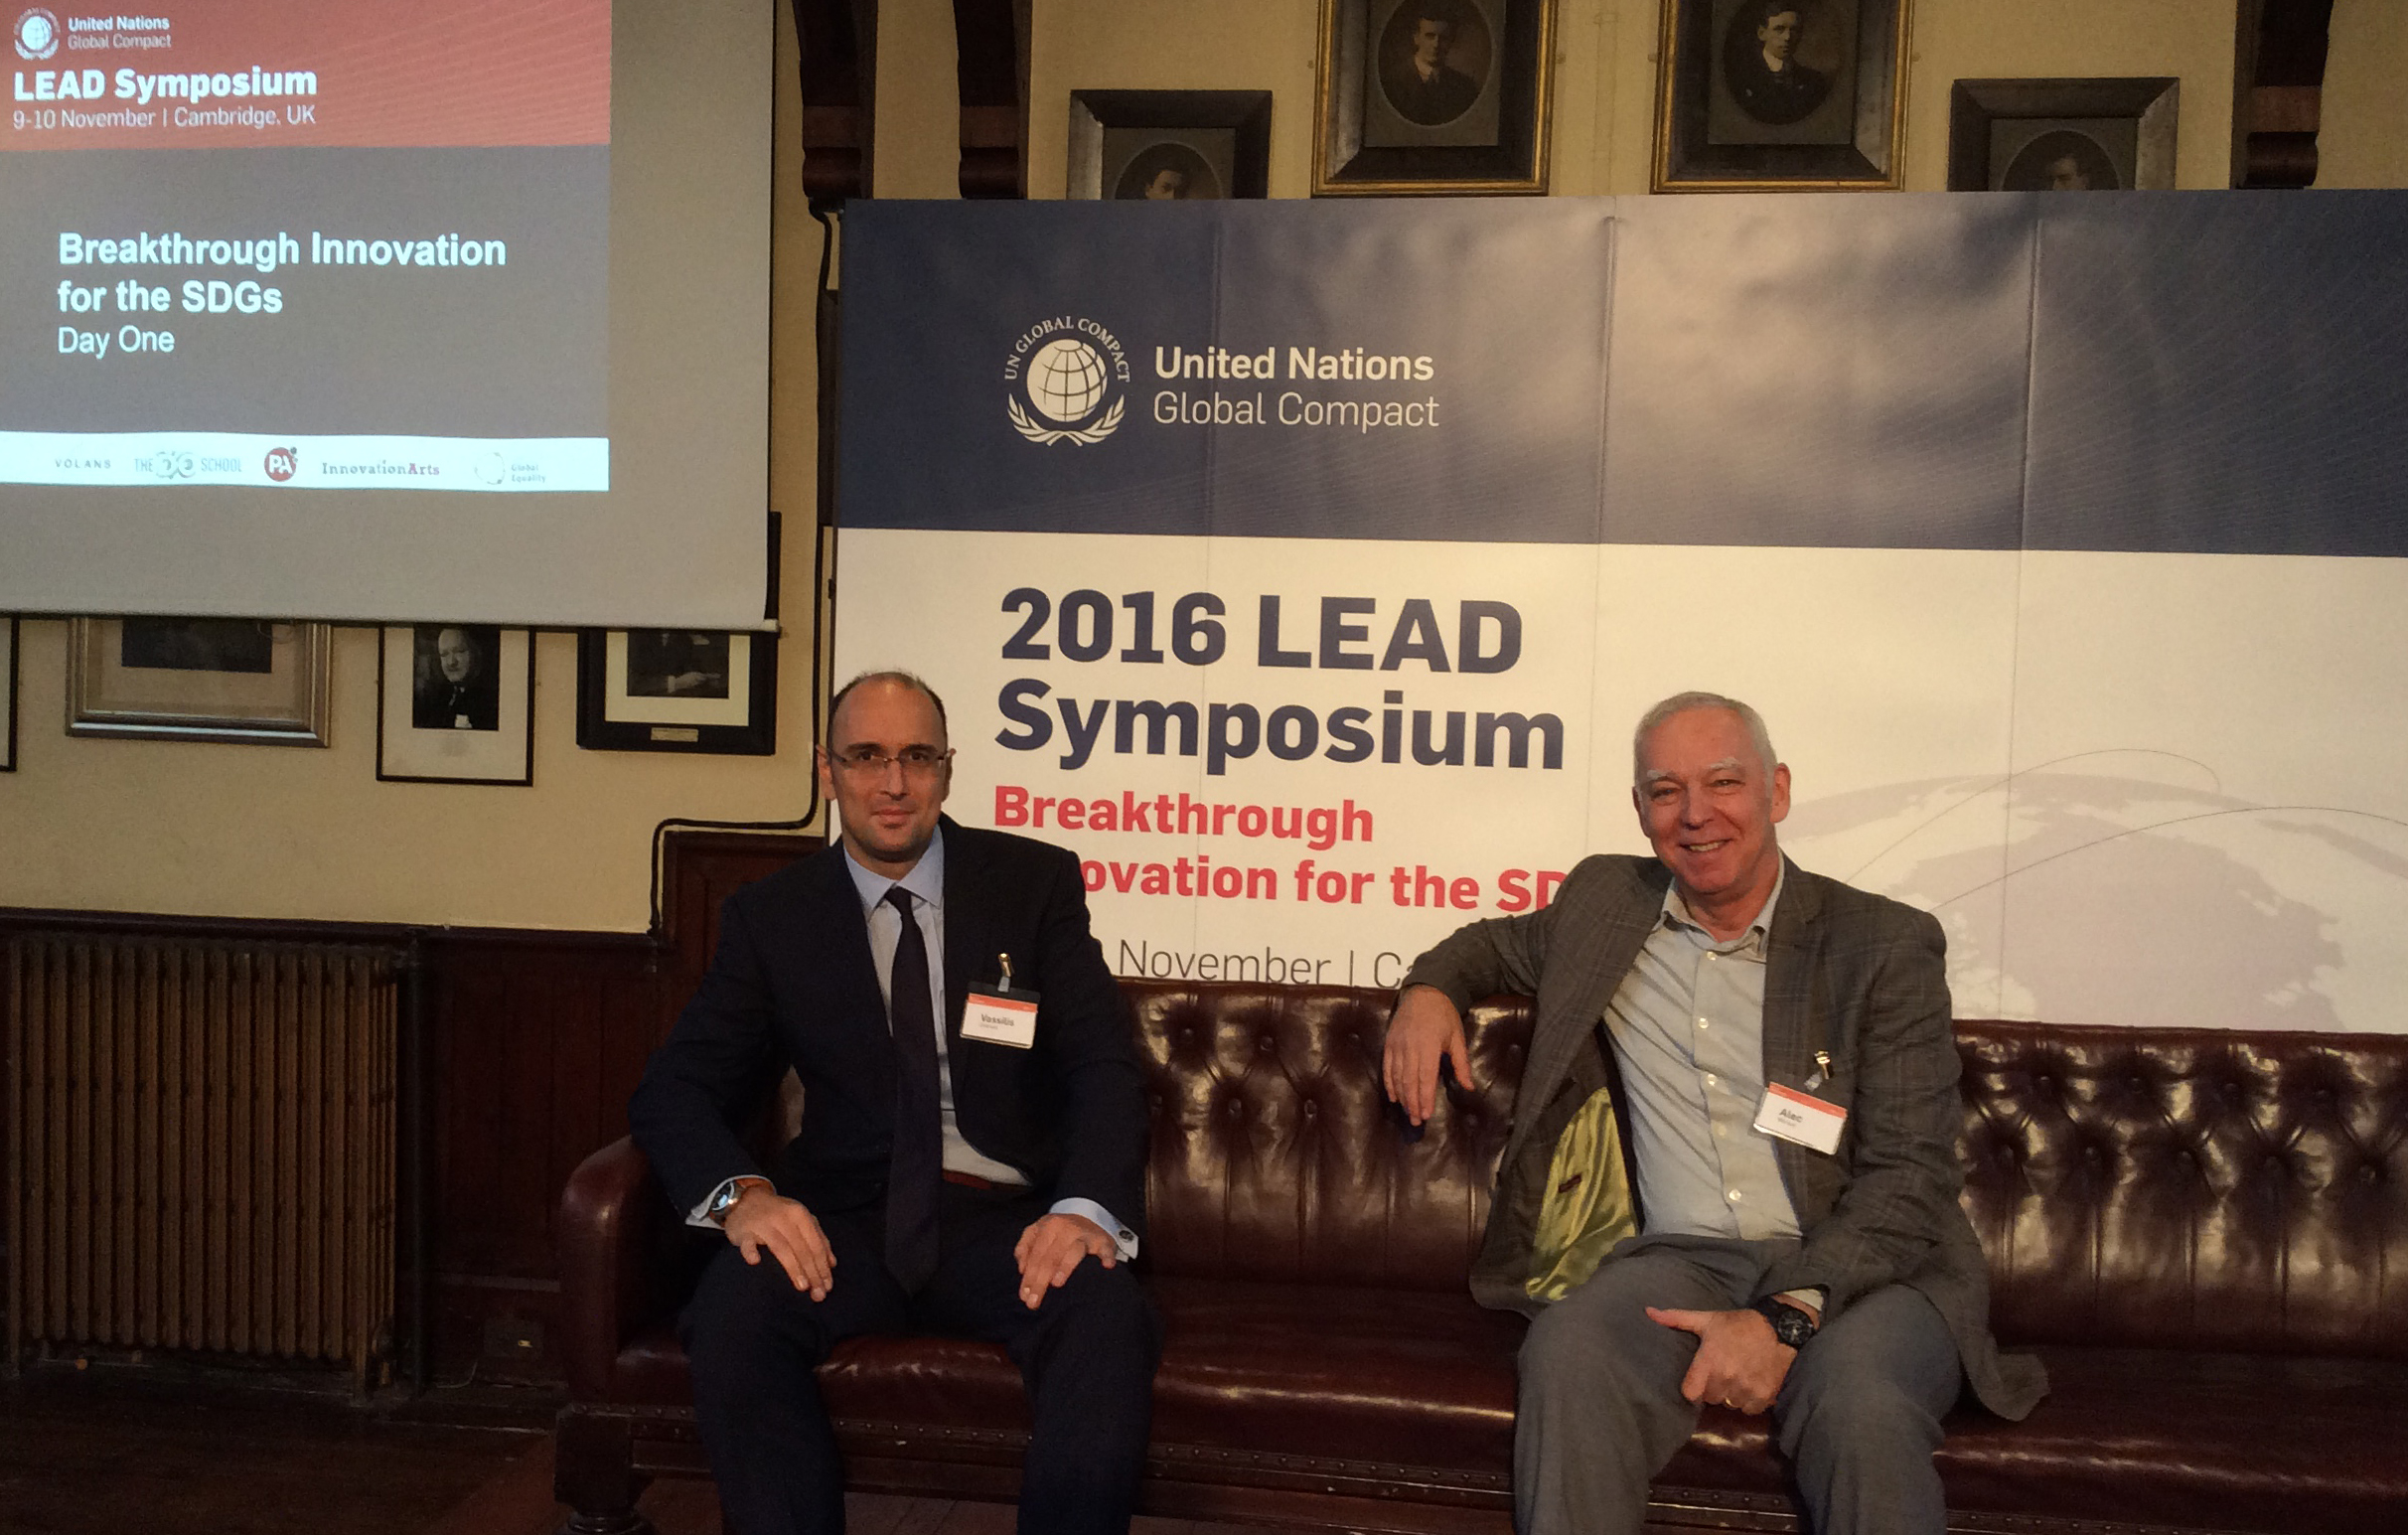 United Nations 2016 LEAD Symposium